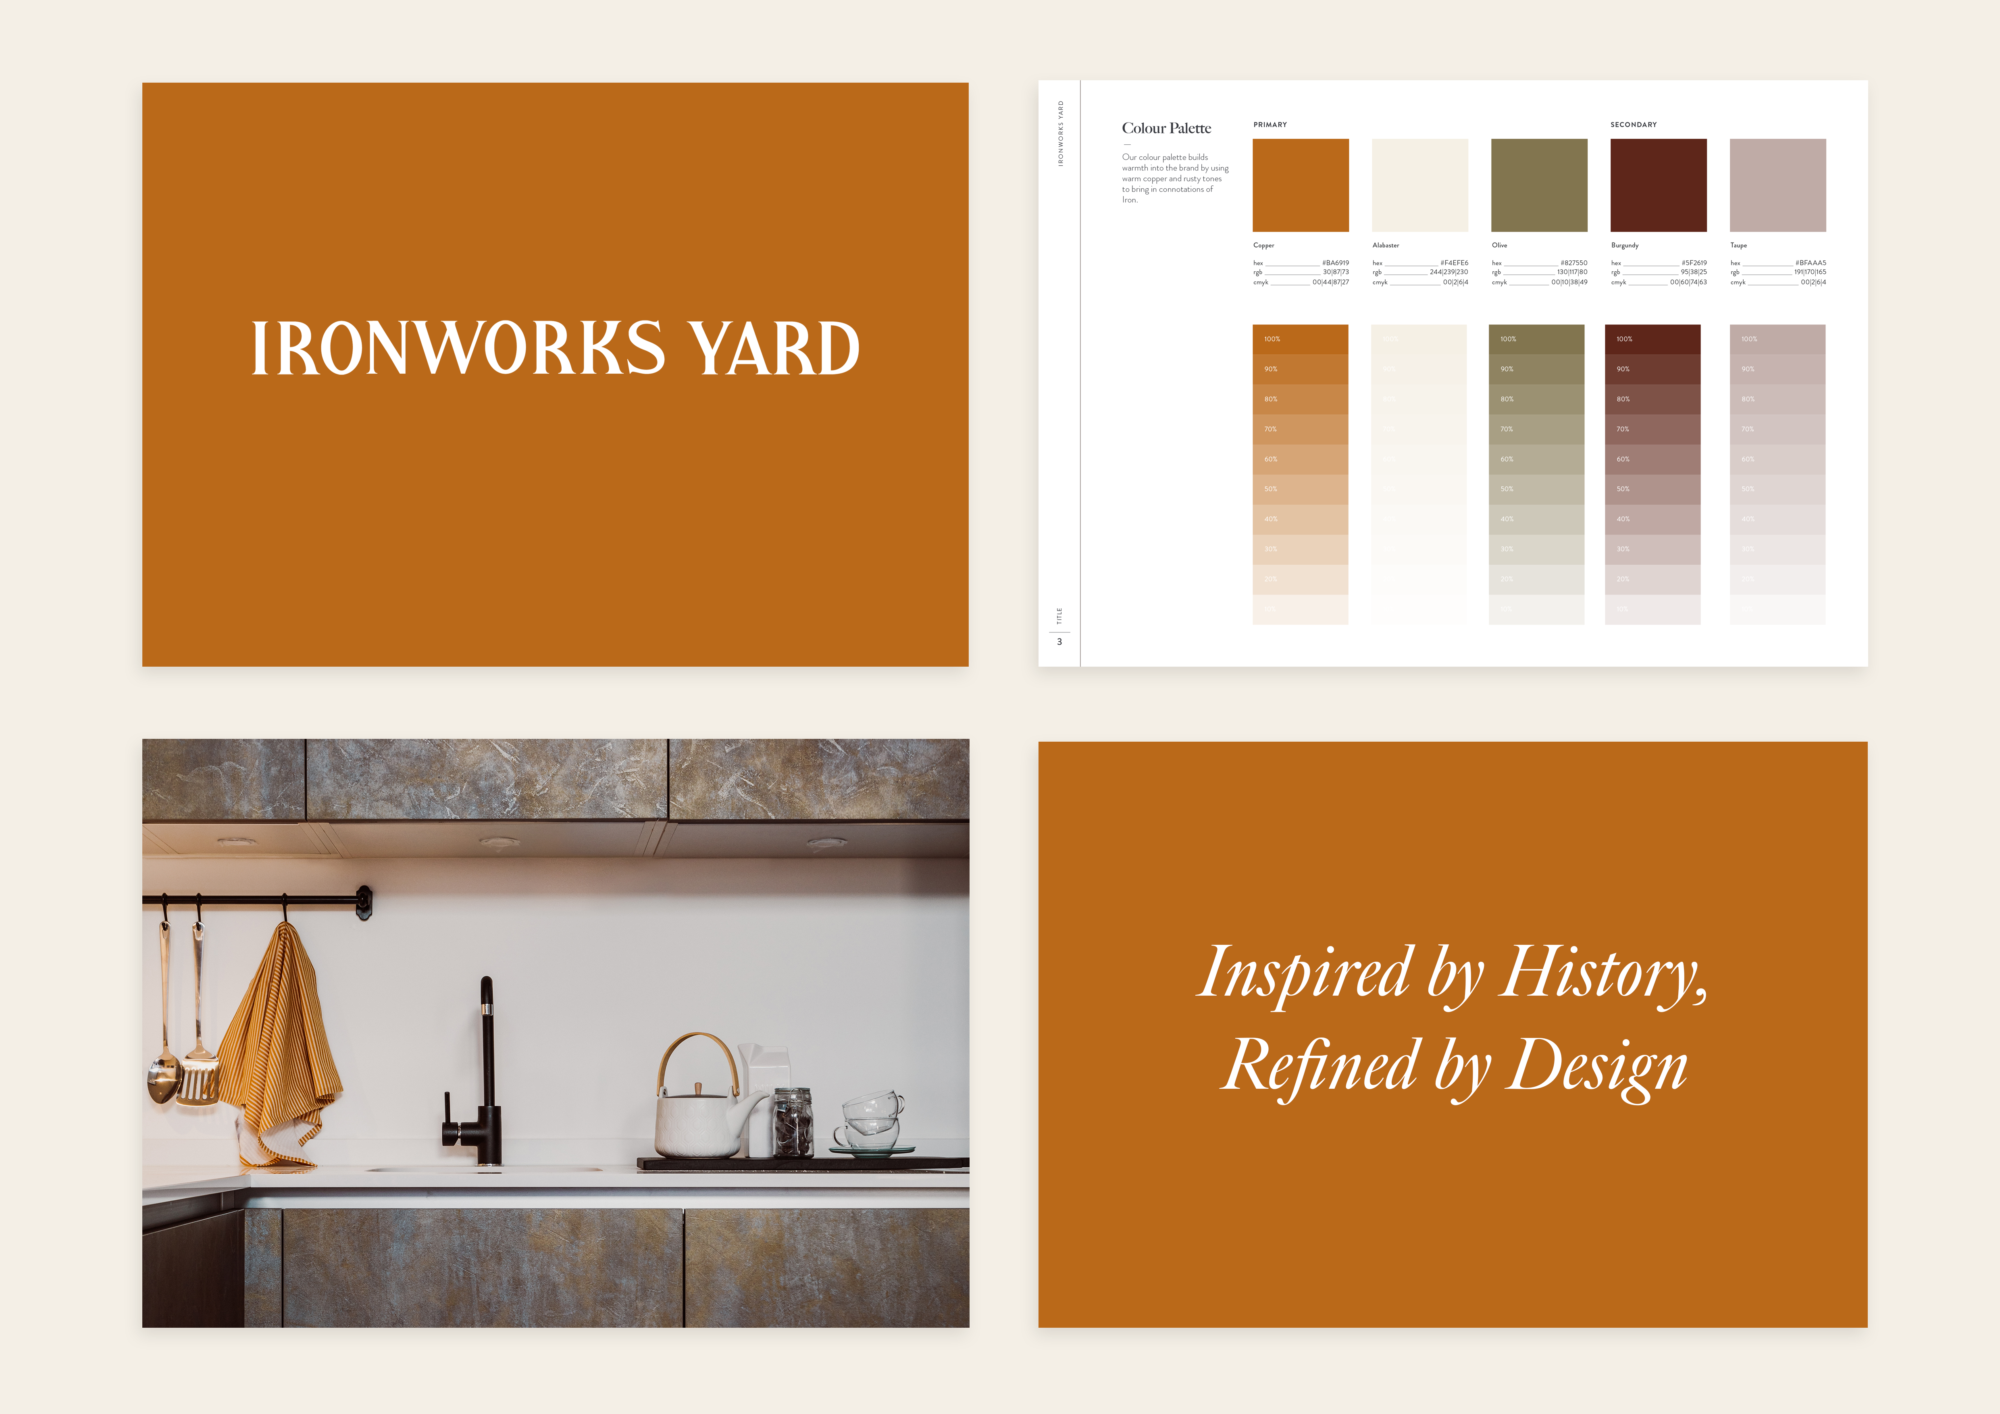 Brand guidelines for the Ironworks Yard development including logo, colour palette, slogan and imagery.